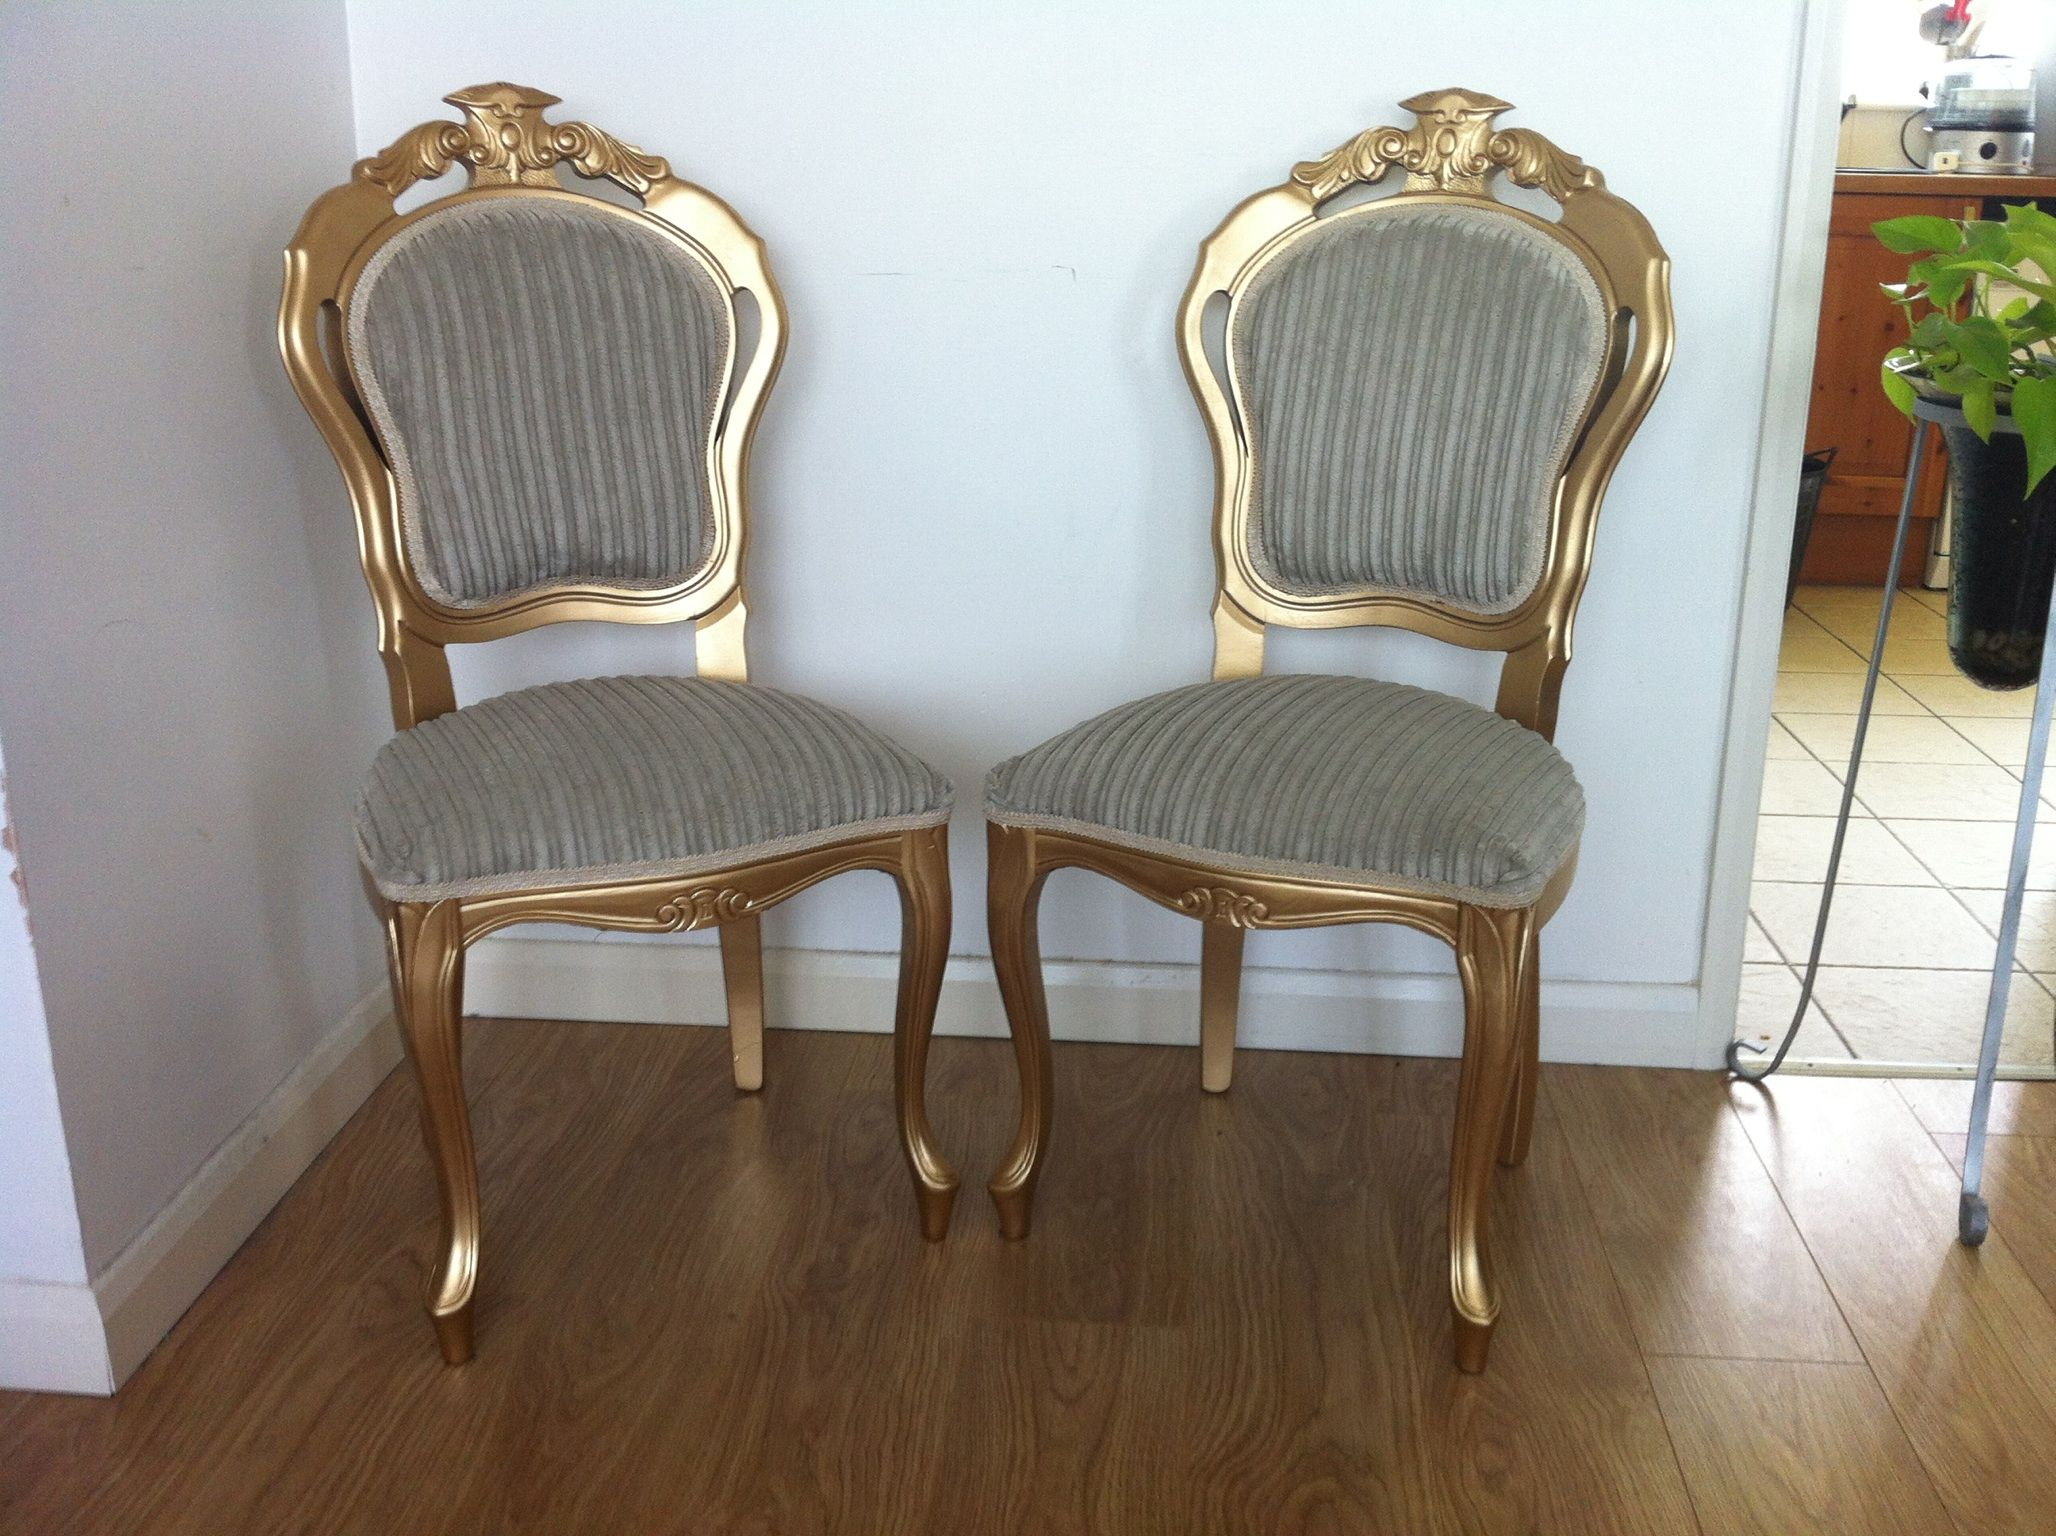 2 Shimmery Gold French Italian Dining Chairs With Stone Very Fluffy